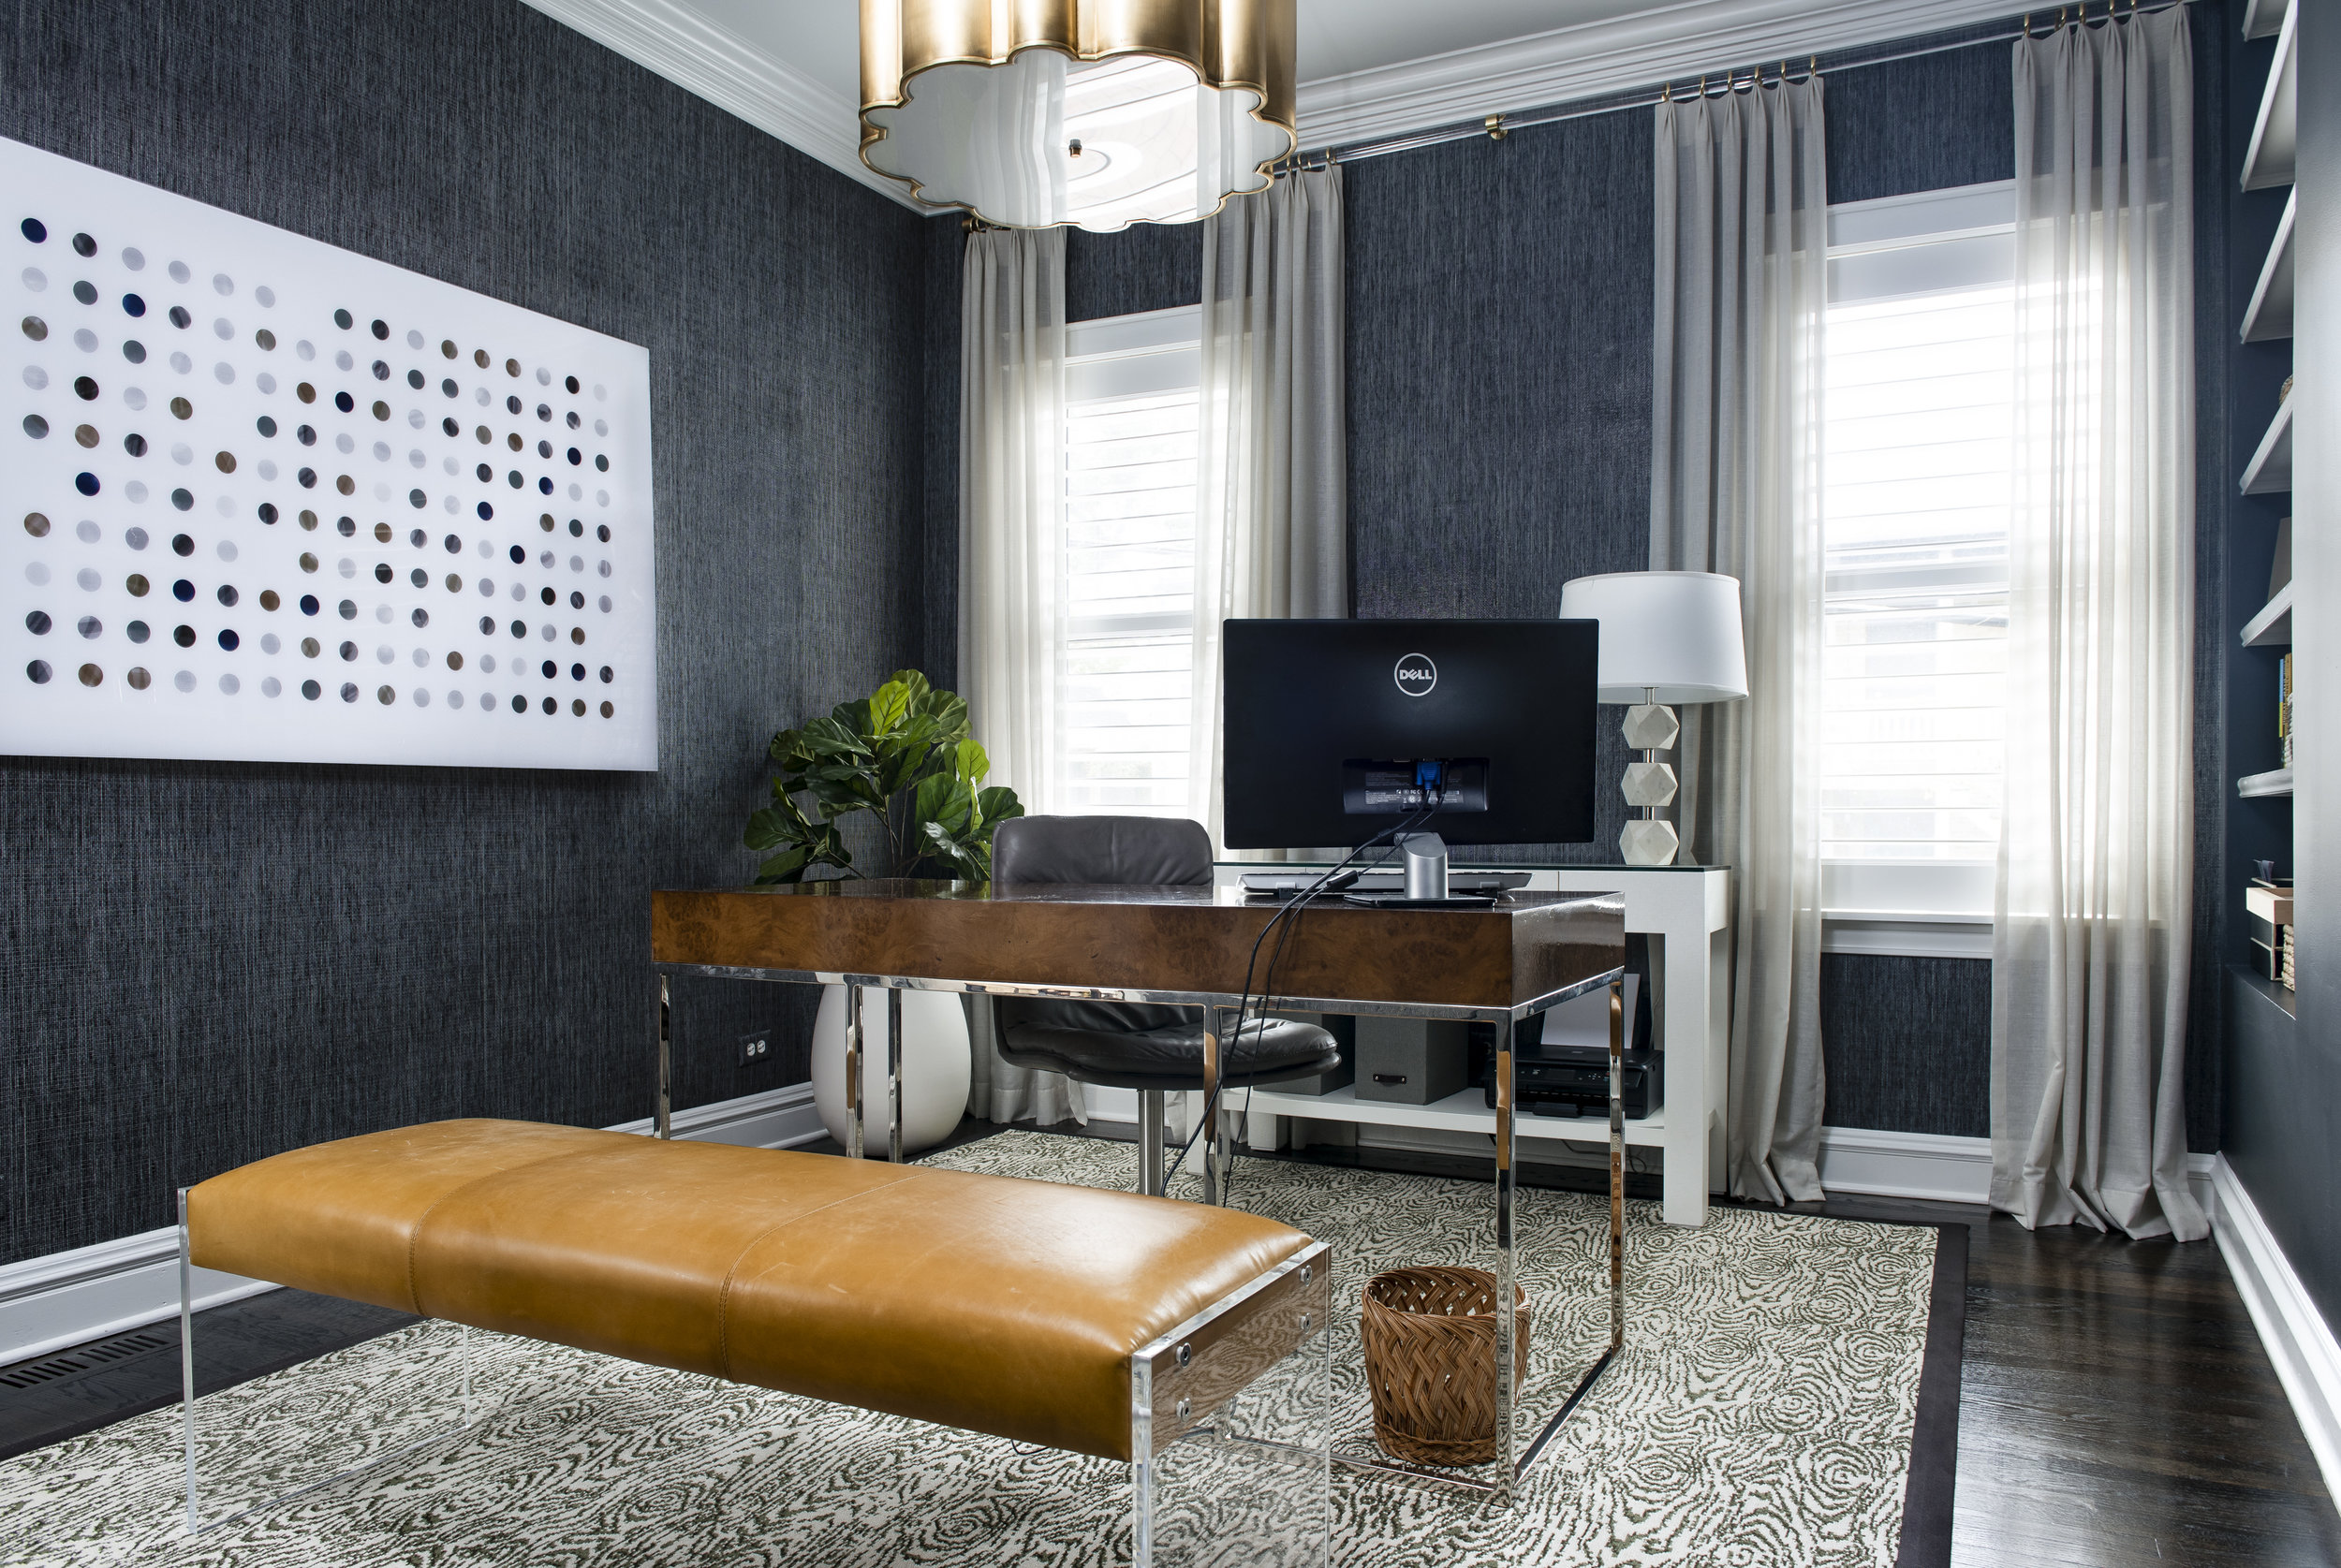 Outline_Interiors_Lakeview_Office_1.jpg